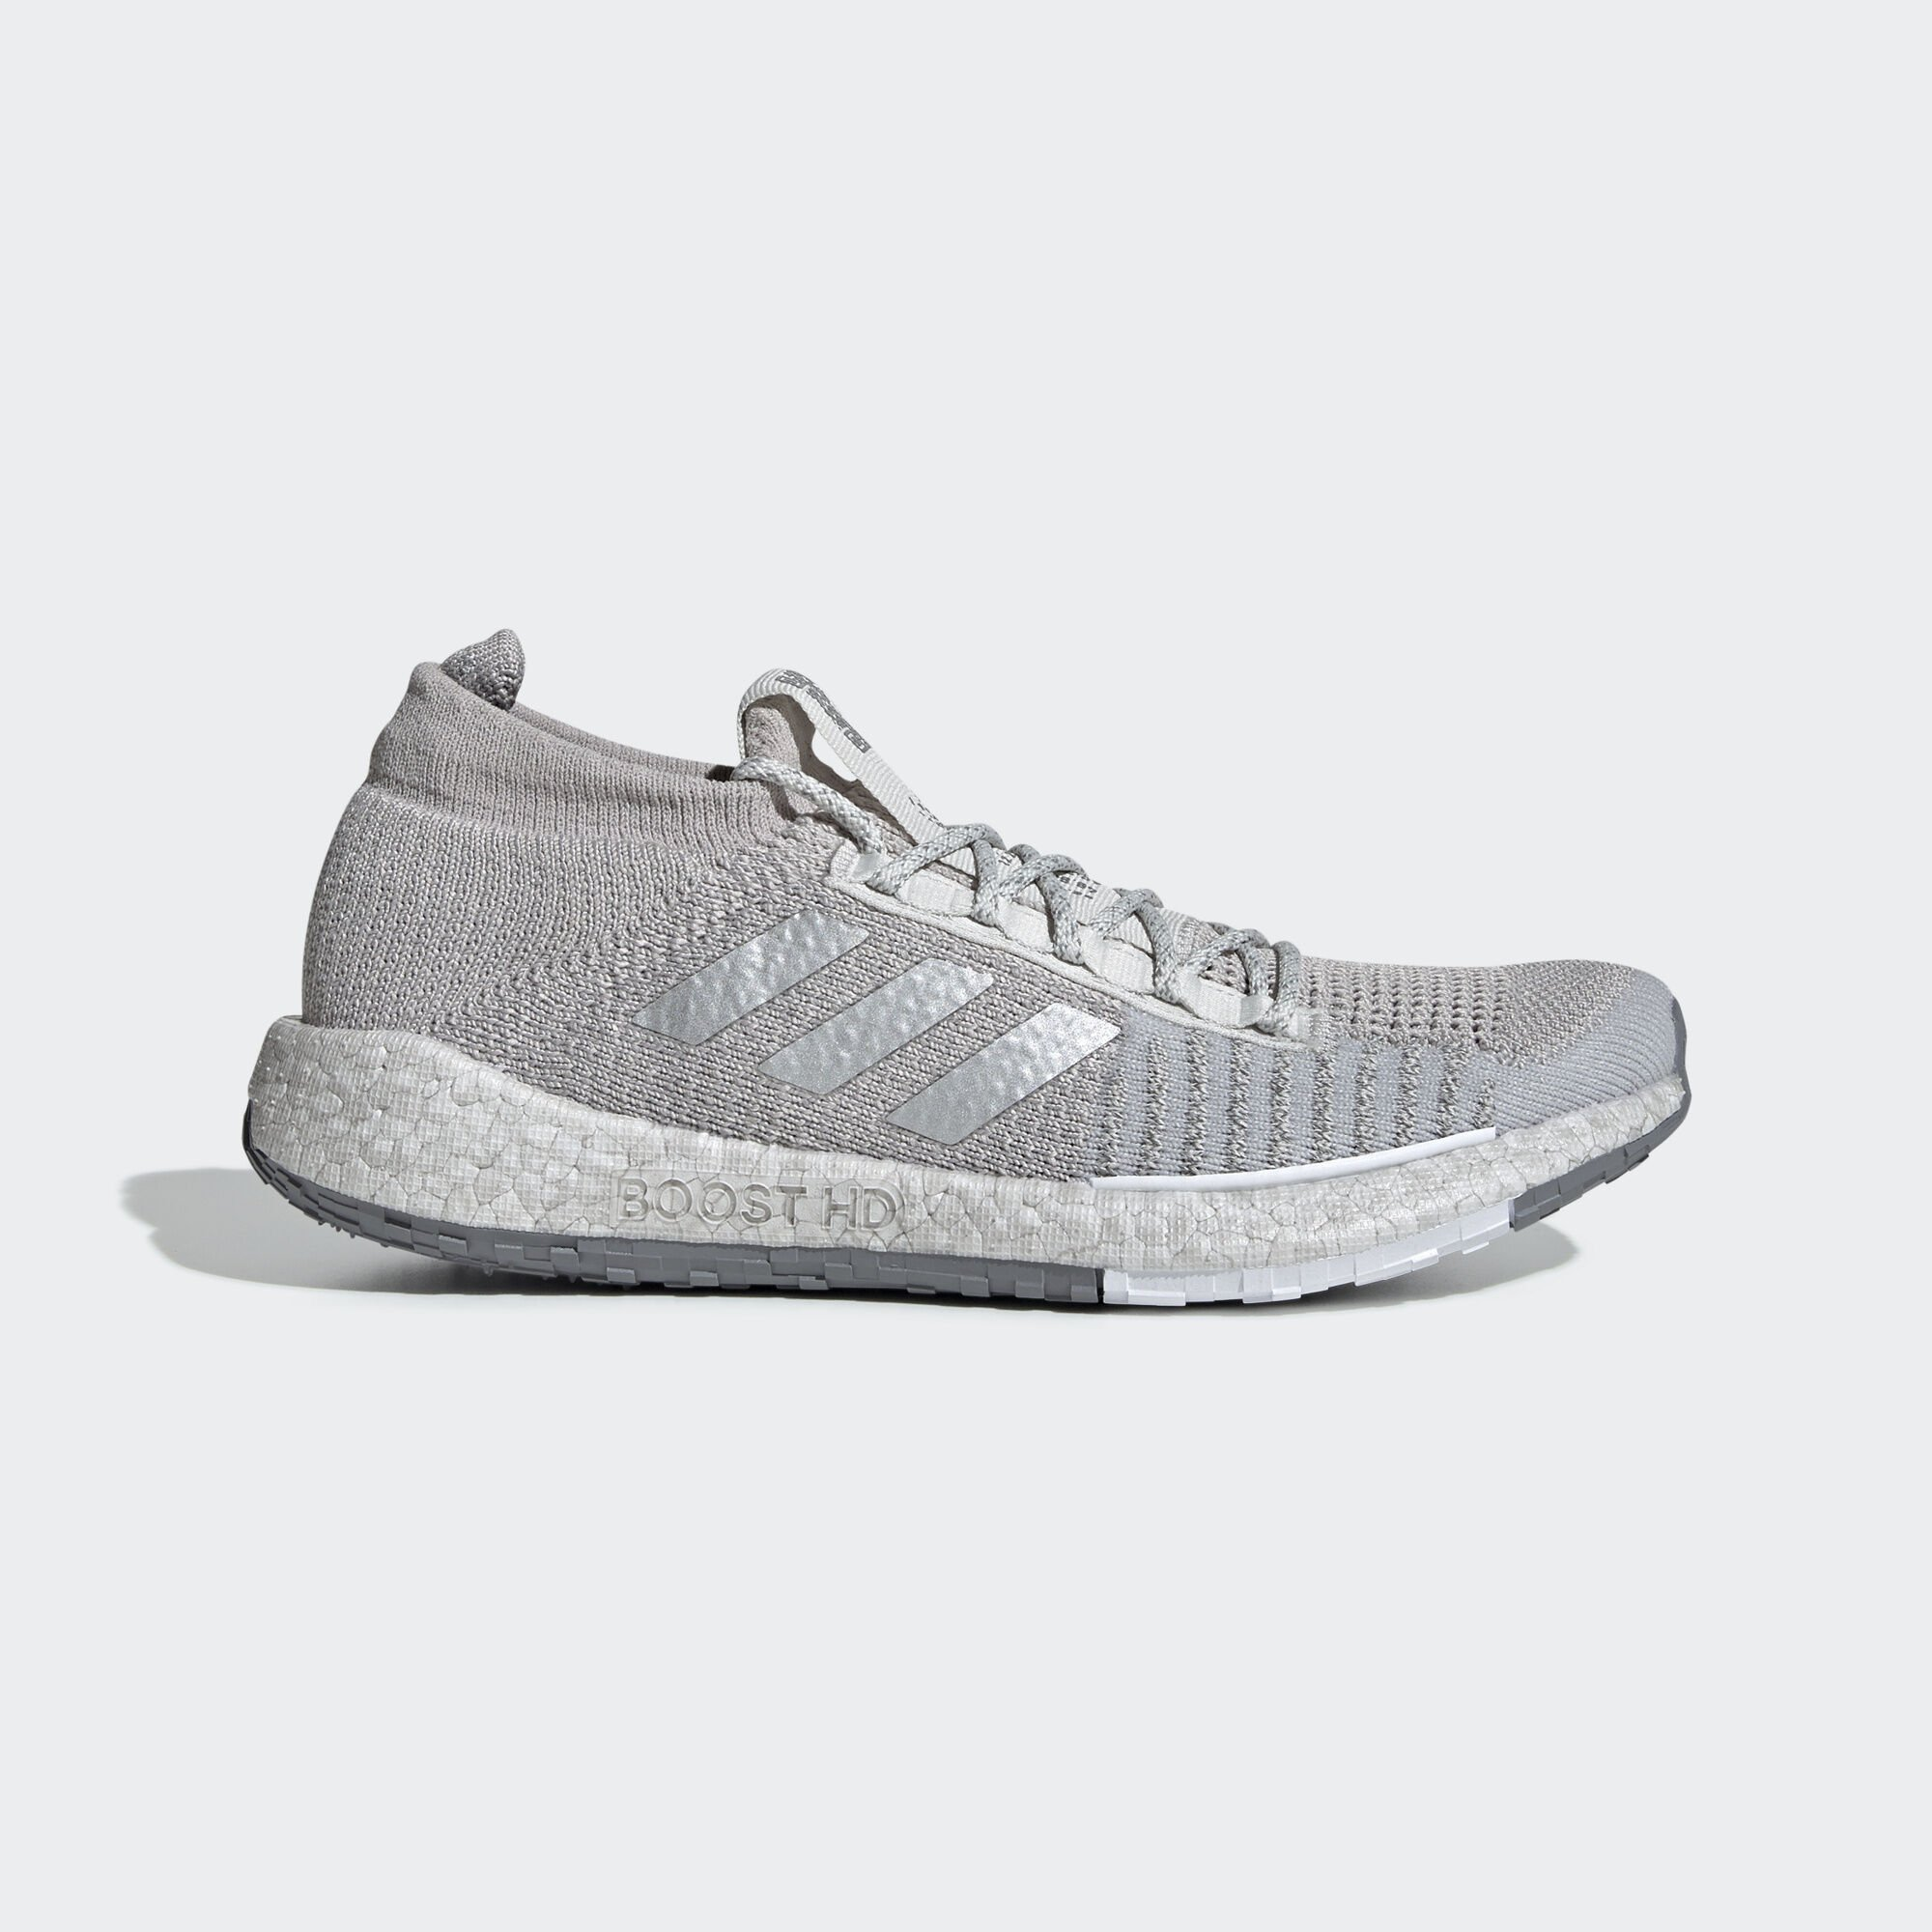 adidas Pulseboost HD Grey One (F33910)